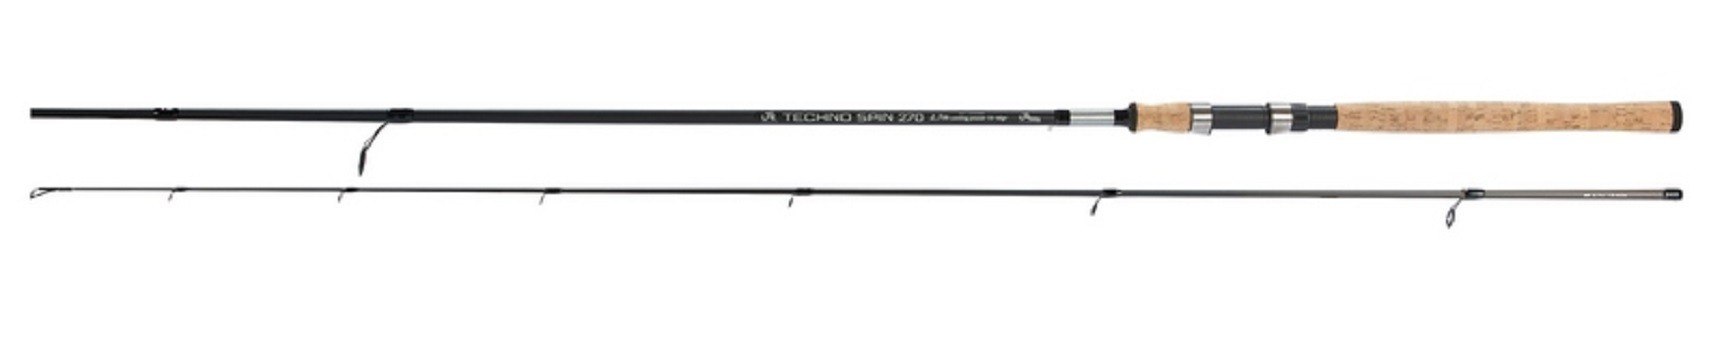 Techno Spin 2,7m 15-40 gr Fil Fishing štap